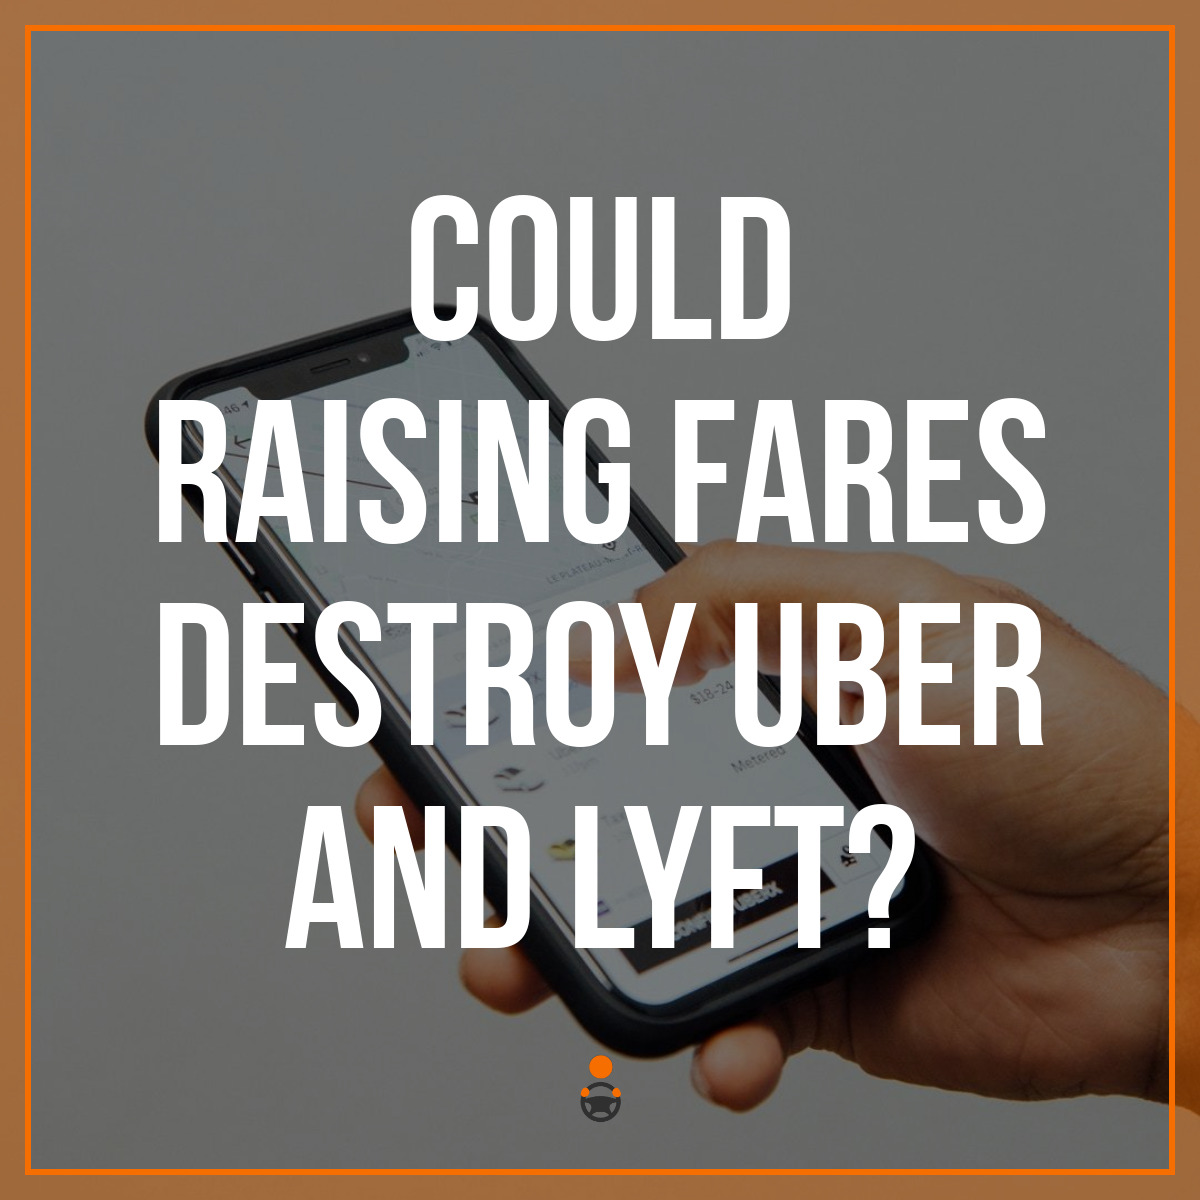 Could Raising Fares Destroy Uber and Lyft?